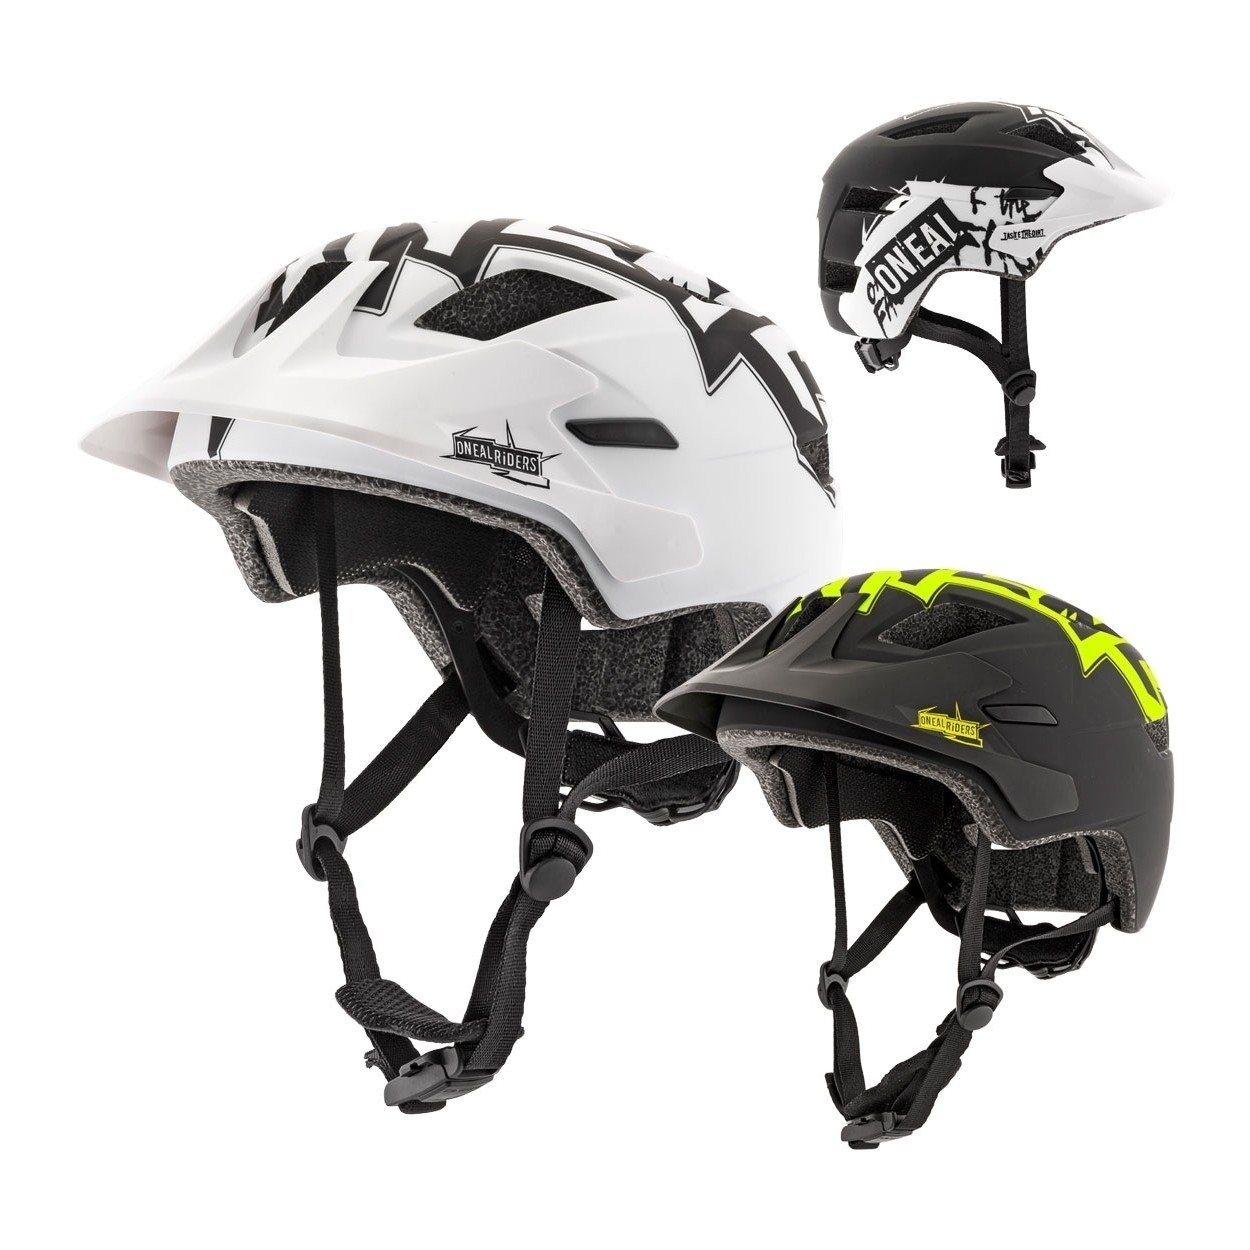 oneal rooky kinder mtb helm stixx enduro store. Black Bedroom Furniture Sets. Home Design Ideas